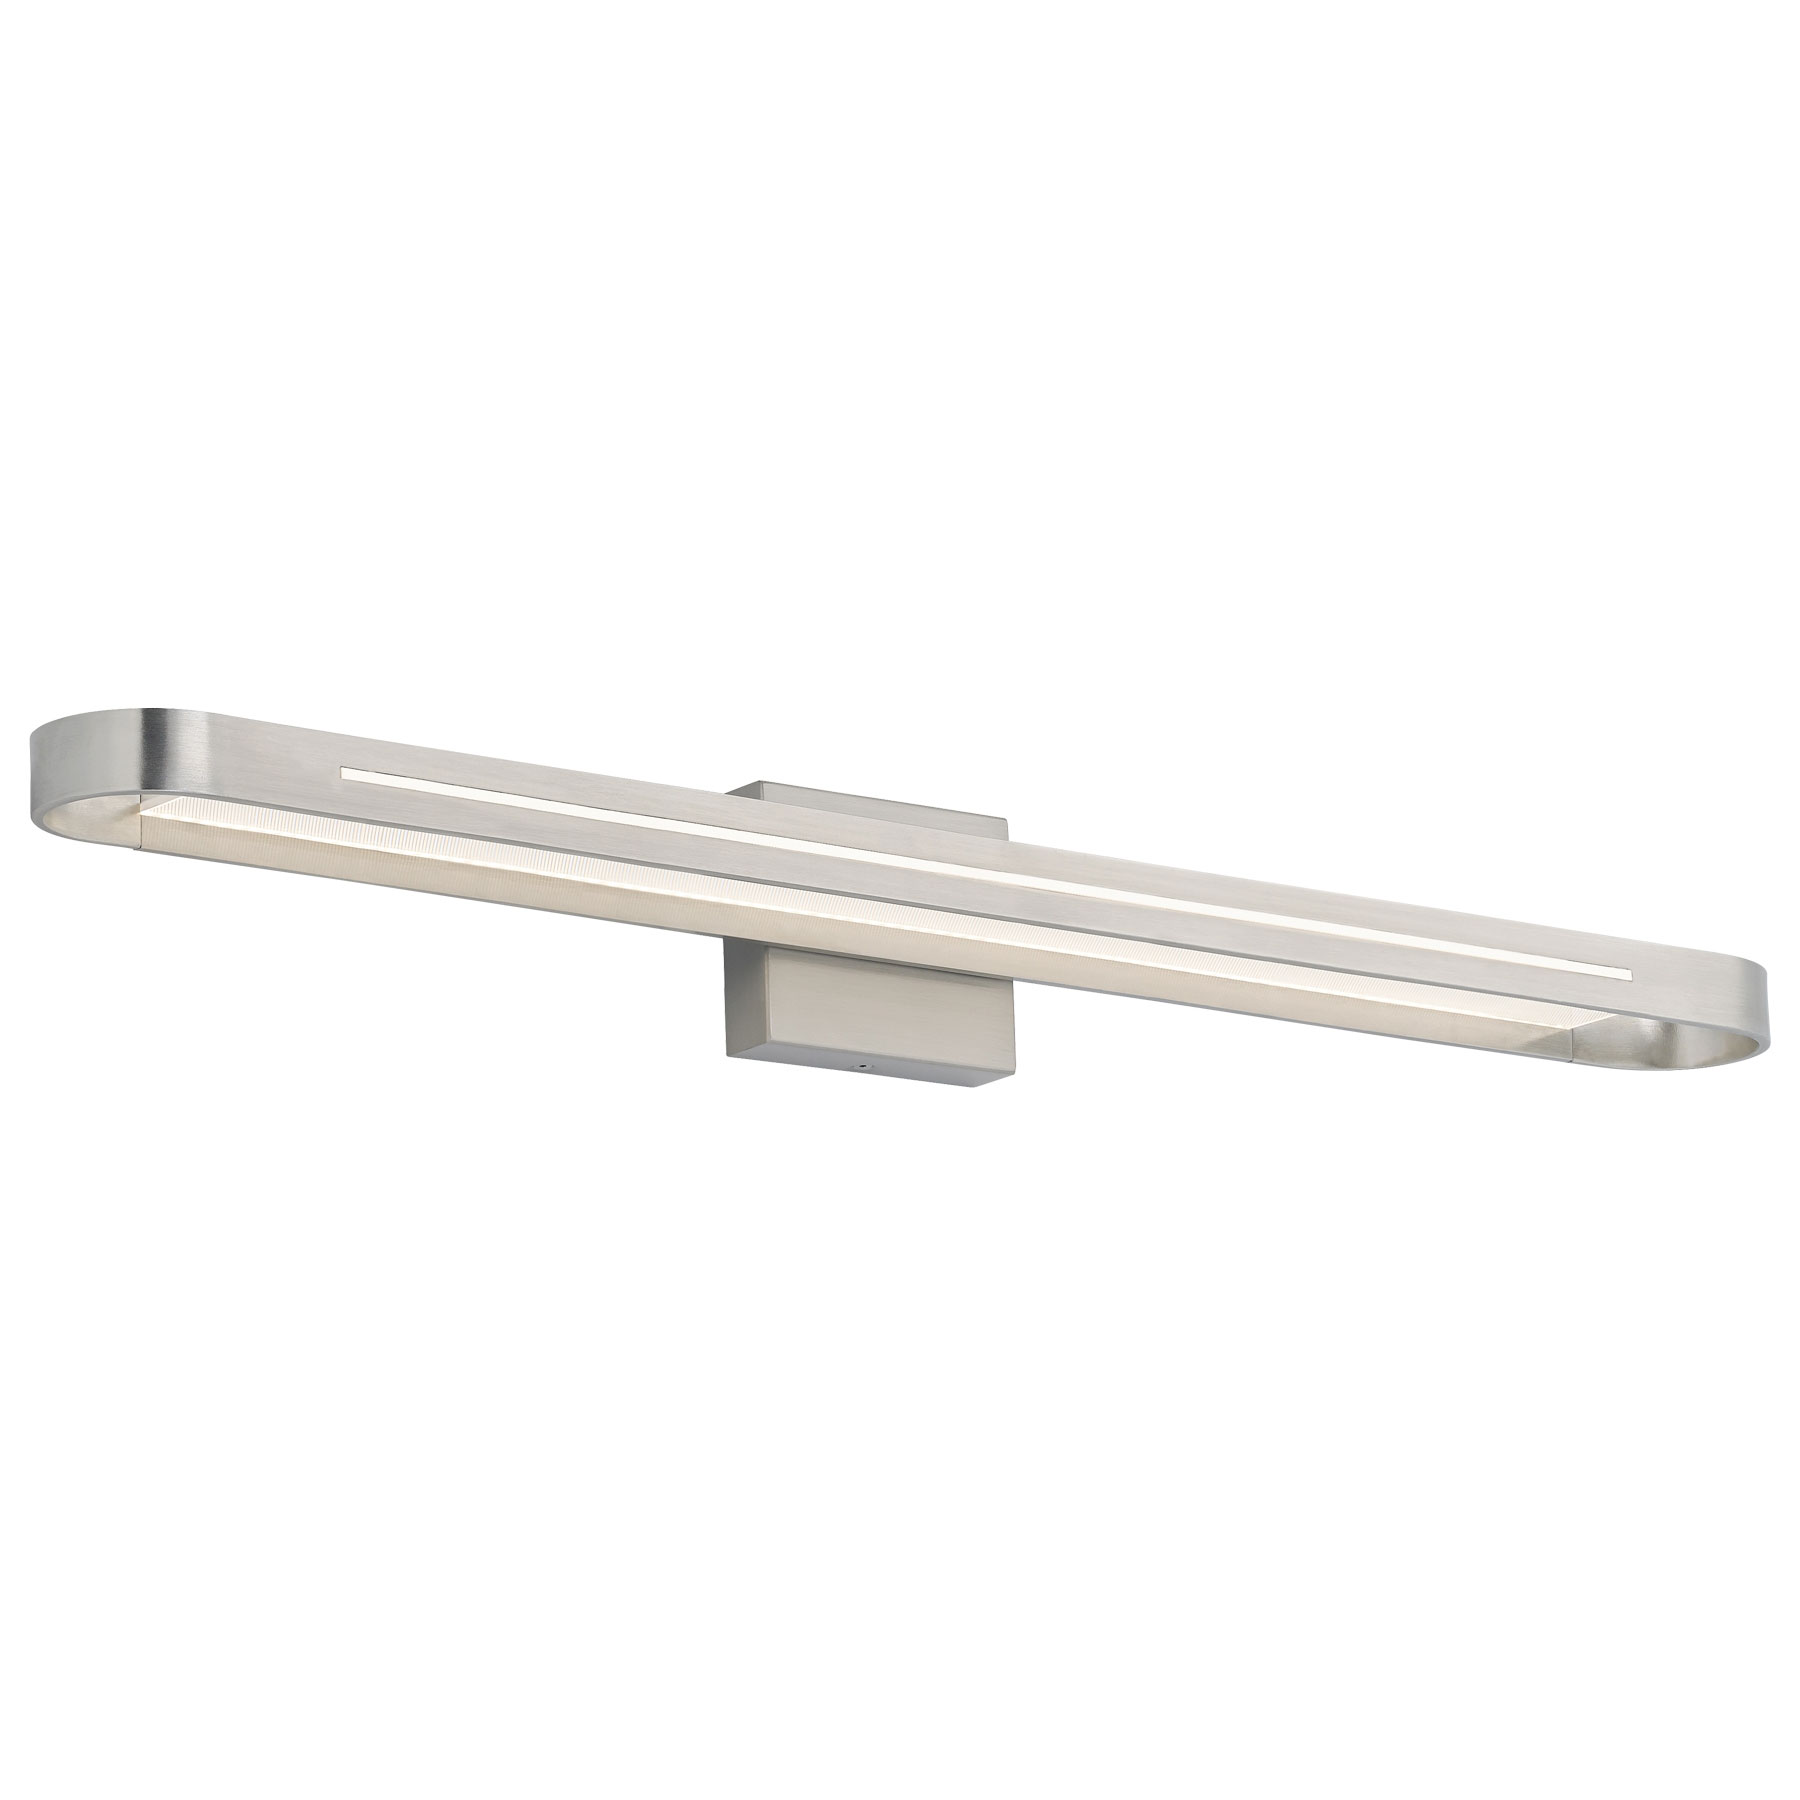 Bath Bar Lights Vertura bath bar by lbl lighting ba868scled830 audiocablefo